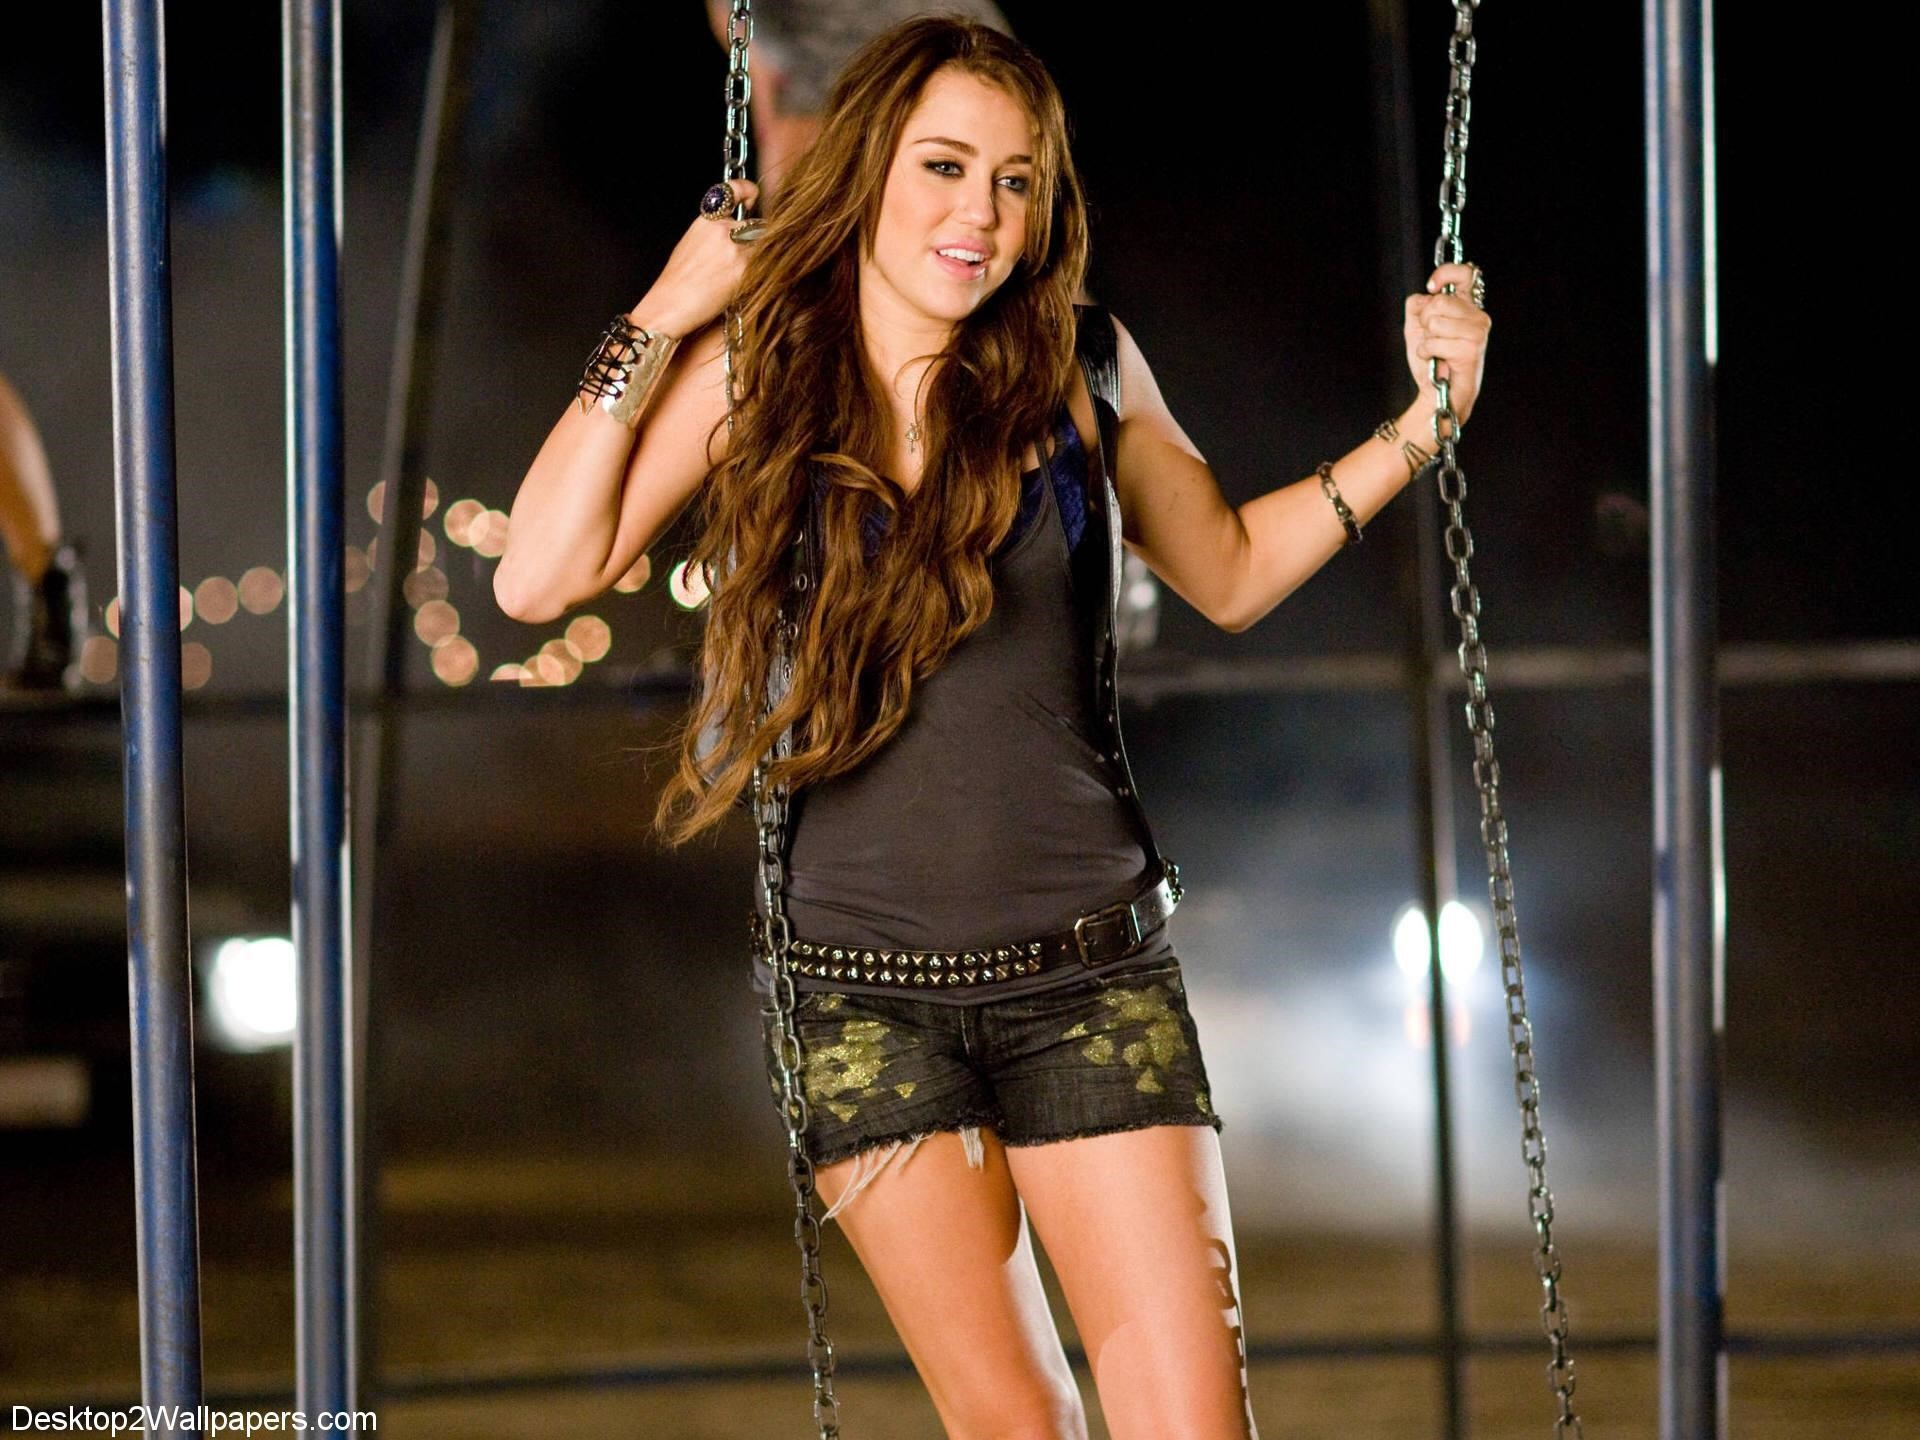 Miley Cyrus Laptop Wallpapers